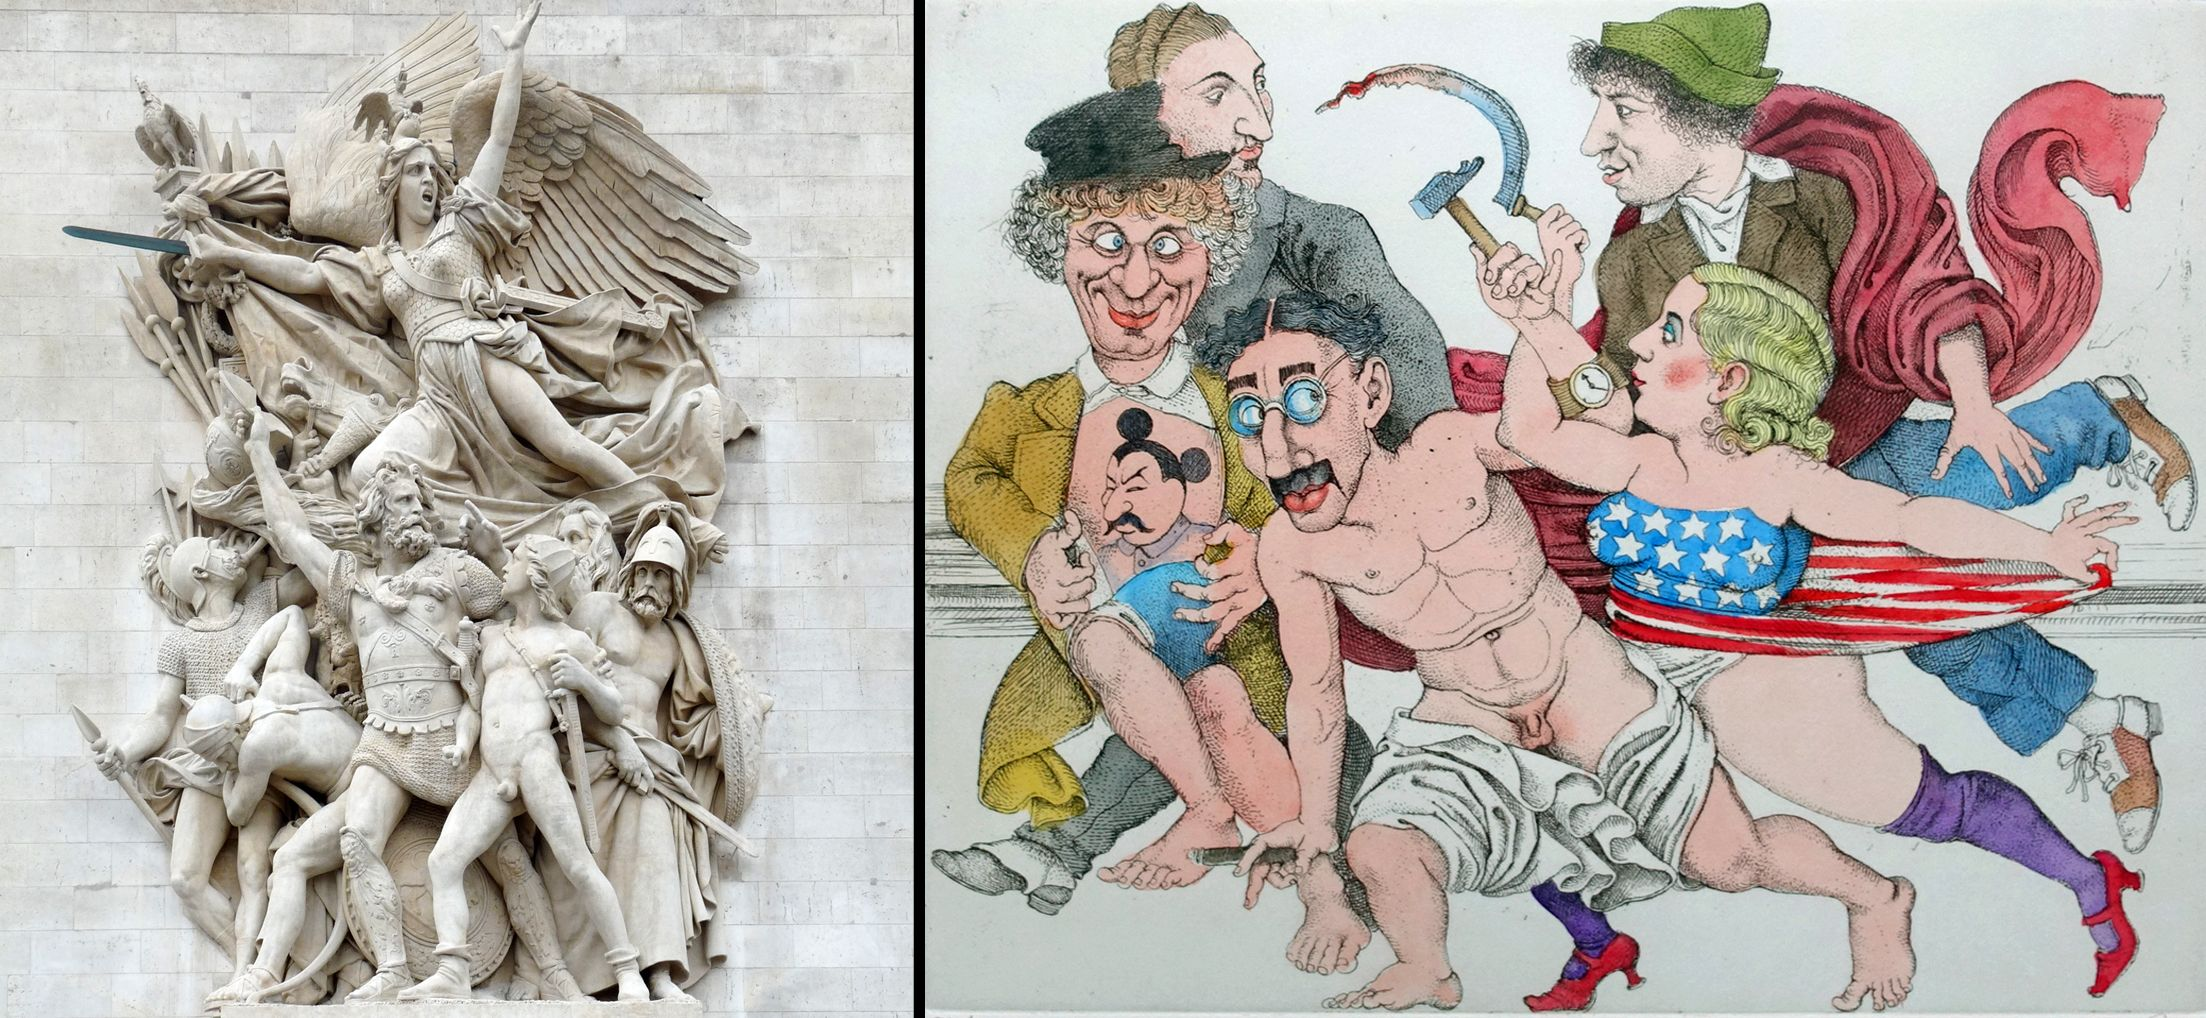 The Marx-Brothers in Moscow Image comparison with a work by Antoine Étex on the Arc de Triomphe